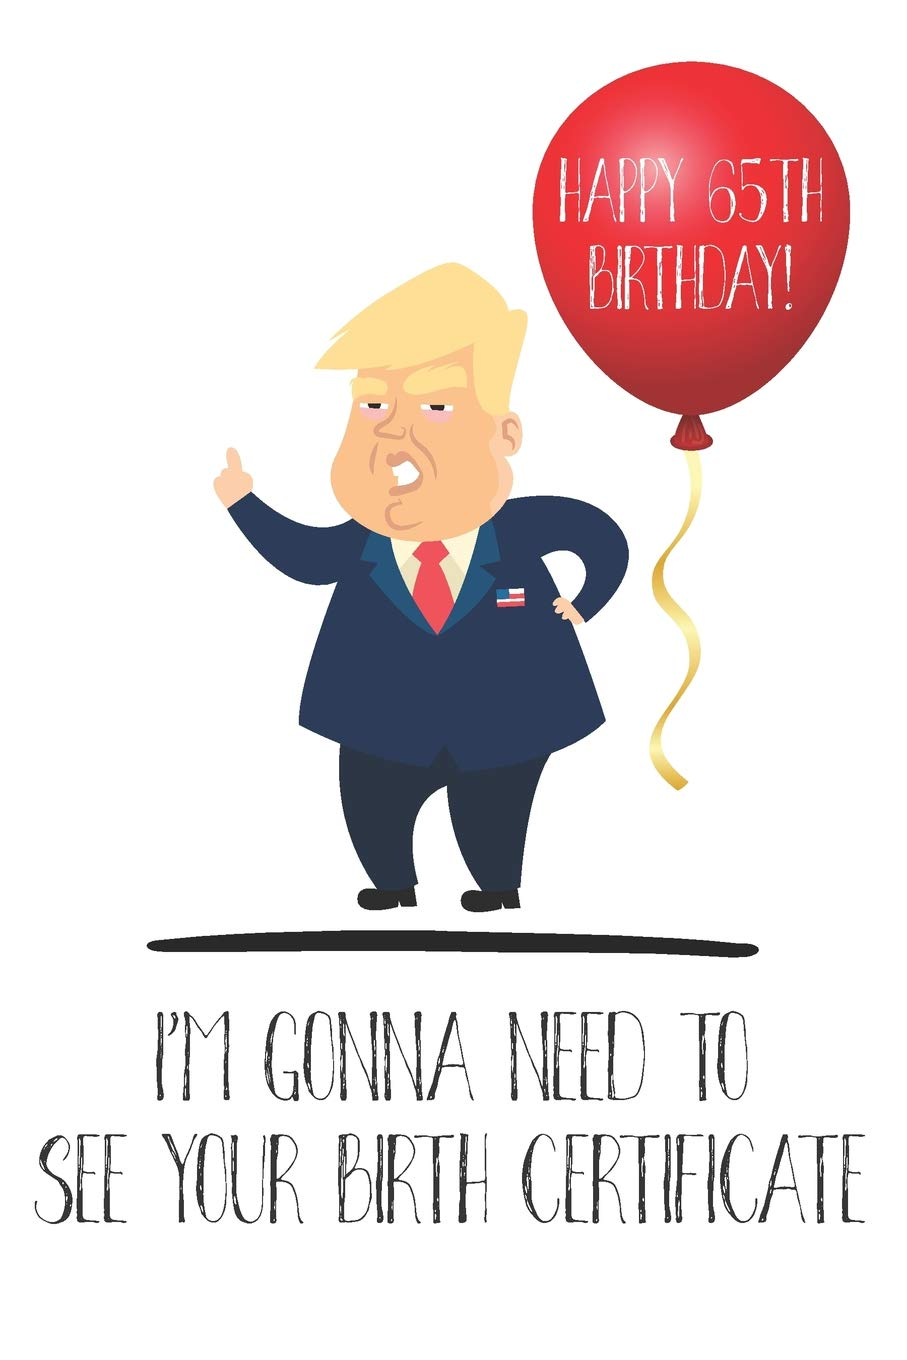 Amazon In Buy Happy 65th Birthday I M Gonna Need To See Your Birth Certificate Funny Donald Trump 65th Birthday Journal Notebook Diary Greetings Card Quote Gift 6 X 9